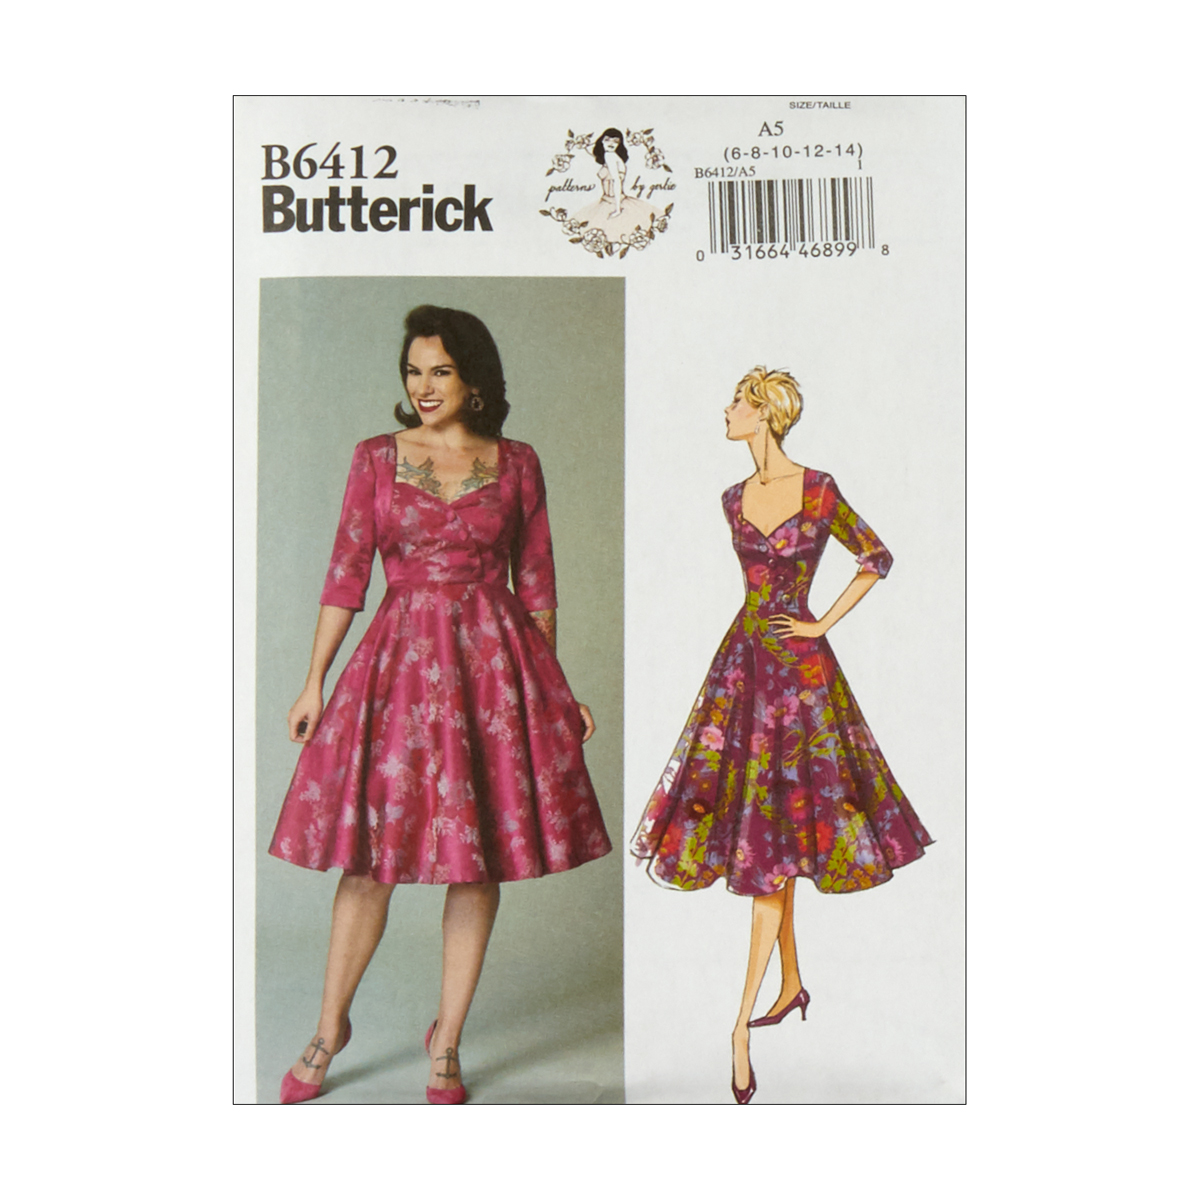 729fc3213 1950s Fabrics   Colors in Fashion Butterick B6412 Patterns by Gertie  Sweetheart-Neckline Full-